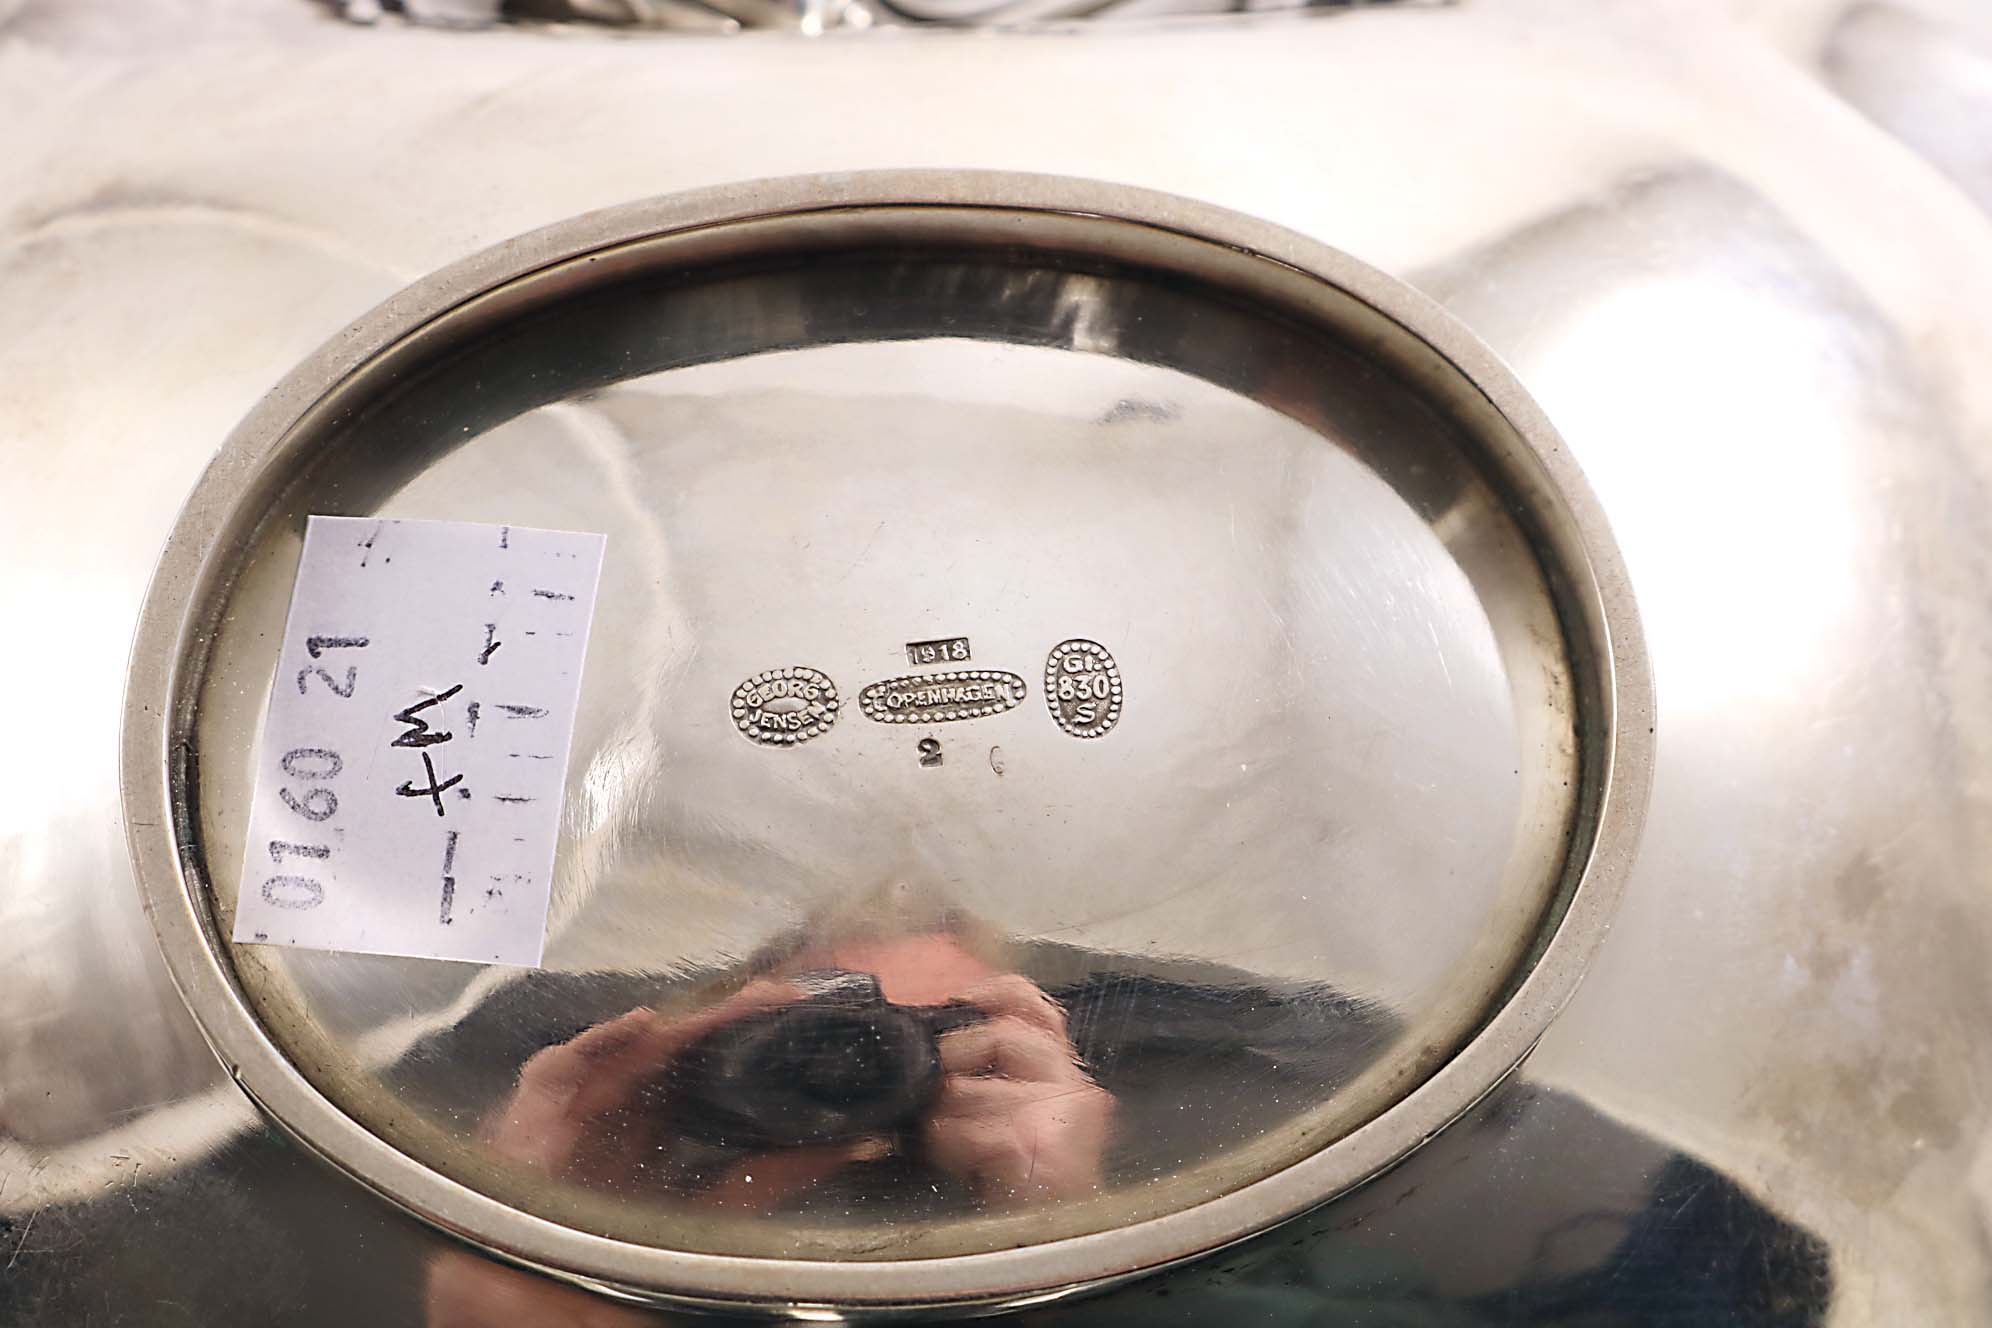 Lot 469 - A SMALL COLLECTION OF PIECES BY GEORG JENSEN OF COPENHAGEN:- An early 20th century Danish dish of